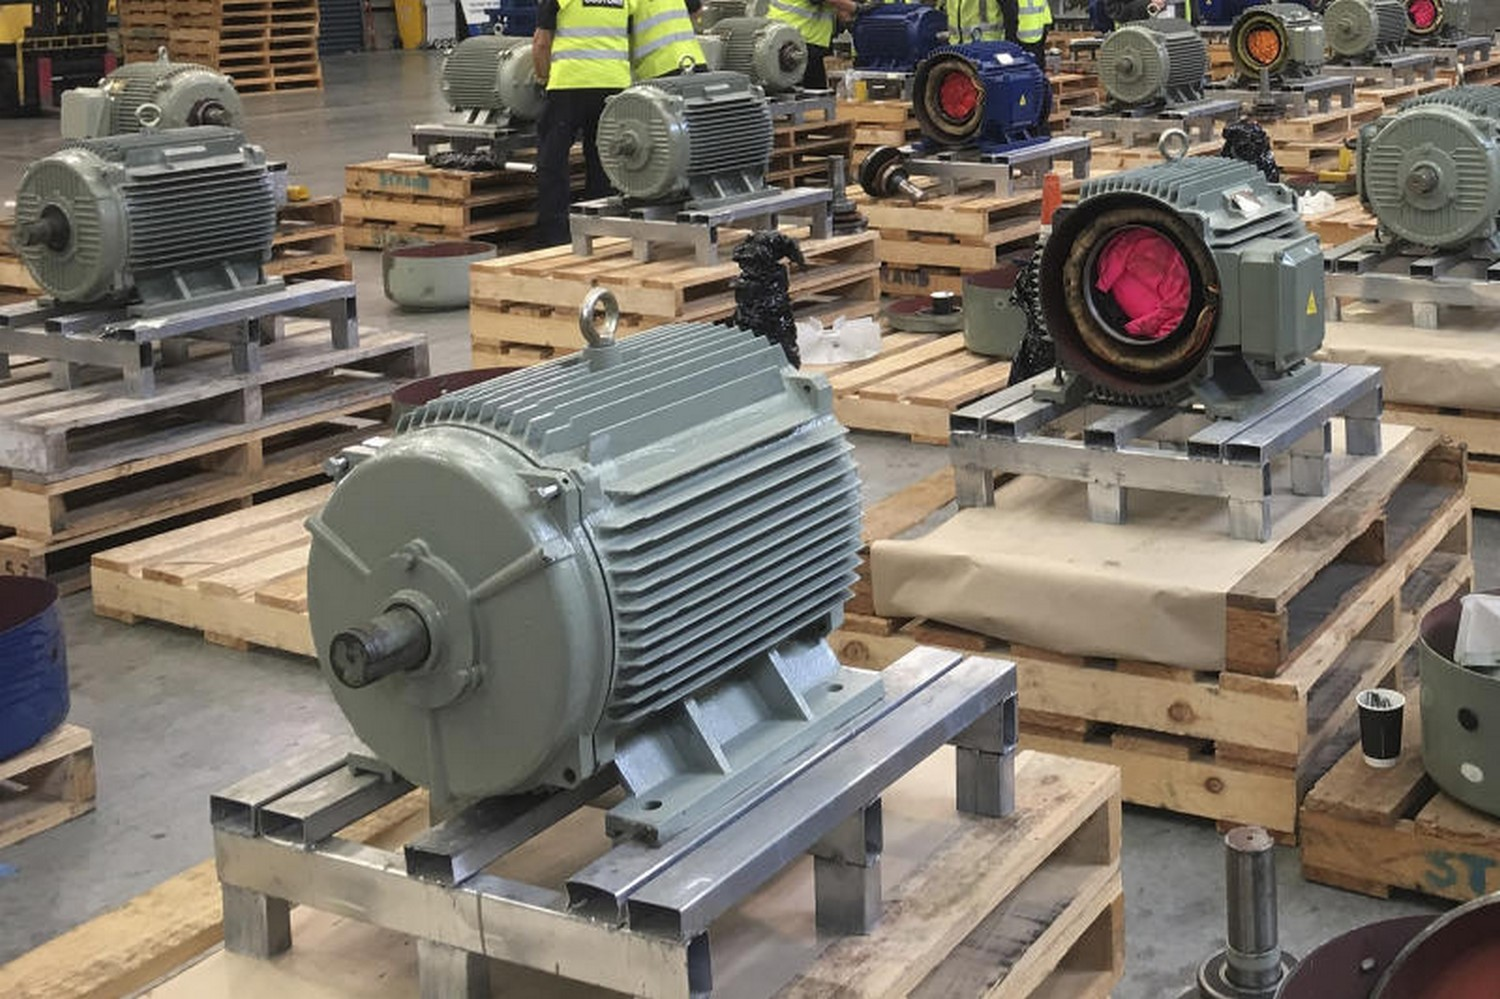 New Zealand Customs found 469 kilogrammes of methamphetaine concealed inside these electric motors imported from Thailand. Valued at US$153 million, it is the largest ever seizure of meth at New Zealand's border. (Photo: NZ Customs/AP)